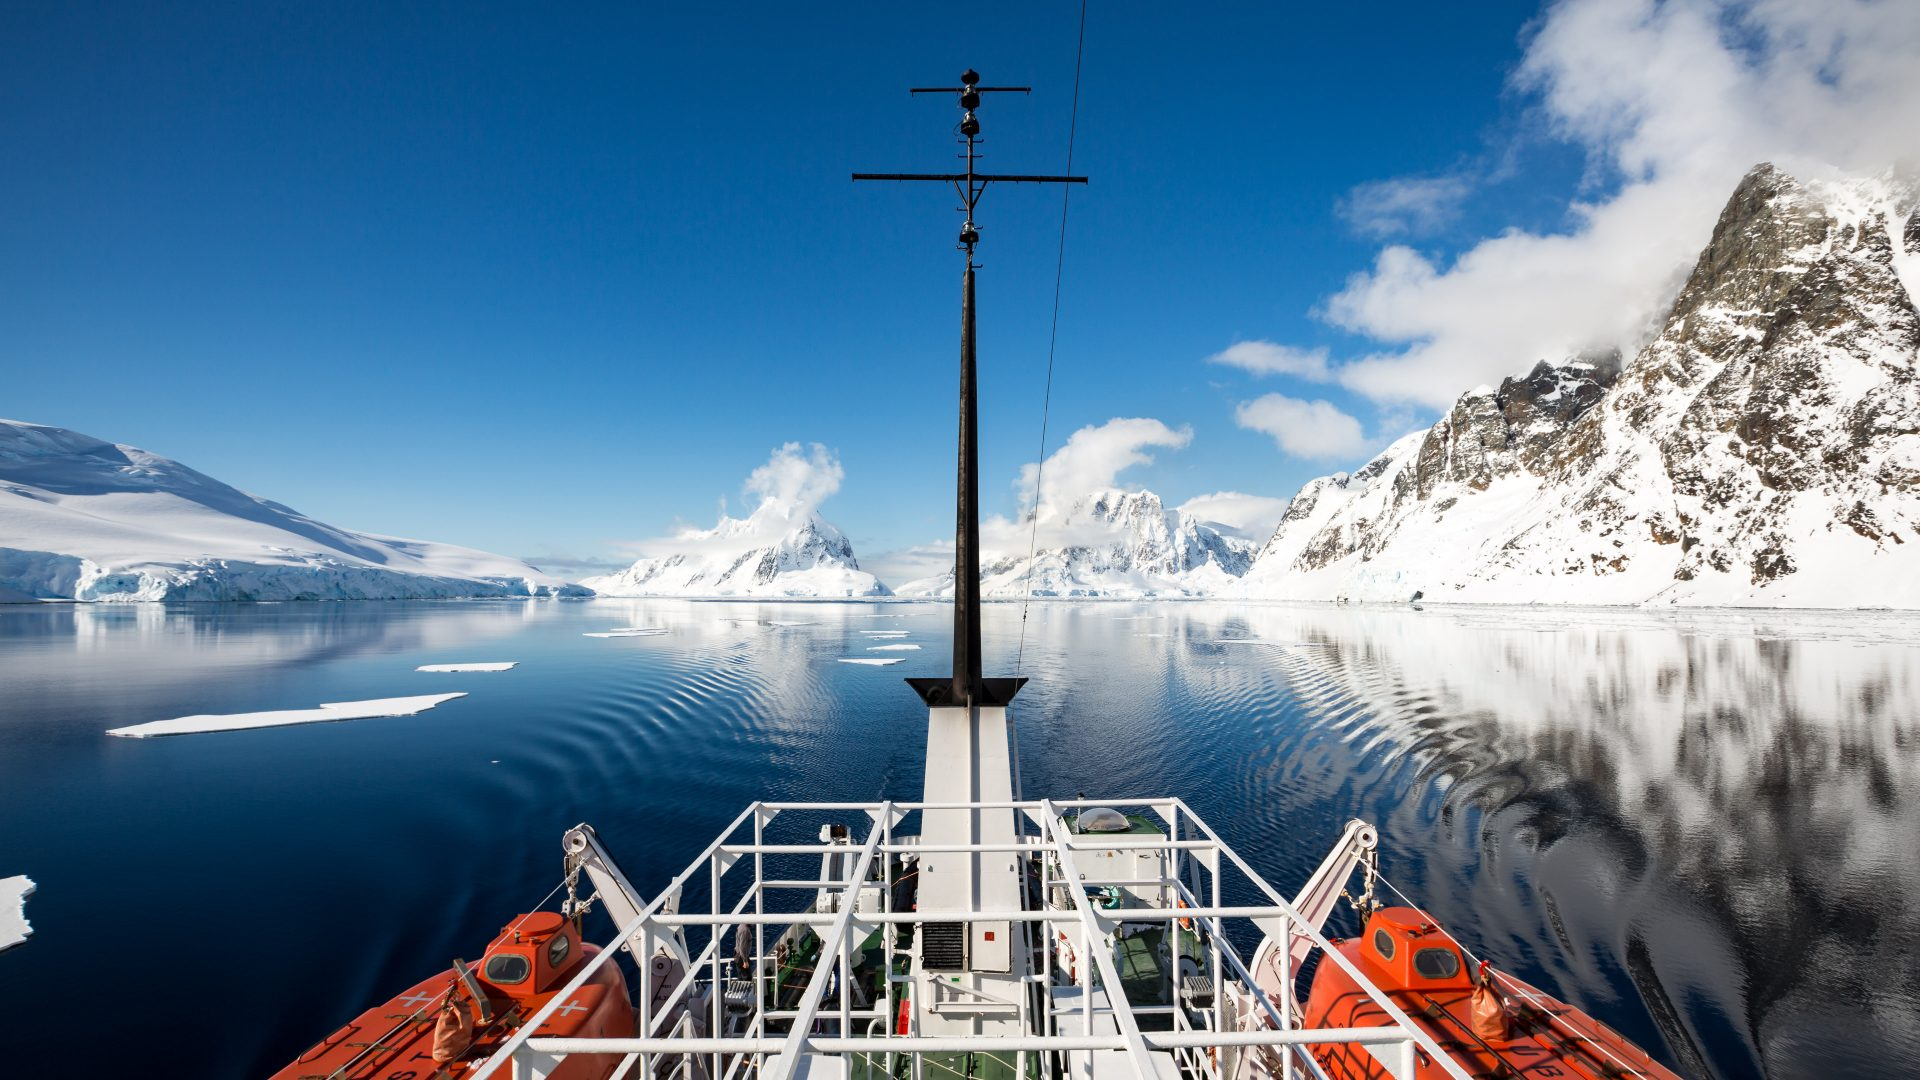 The ship passes through the calm water of Antartica, flanked by icebergs on all sides.